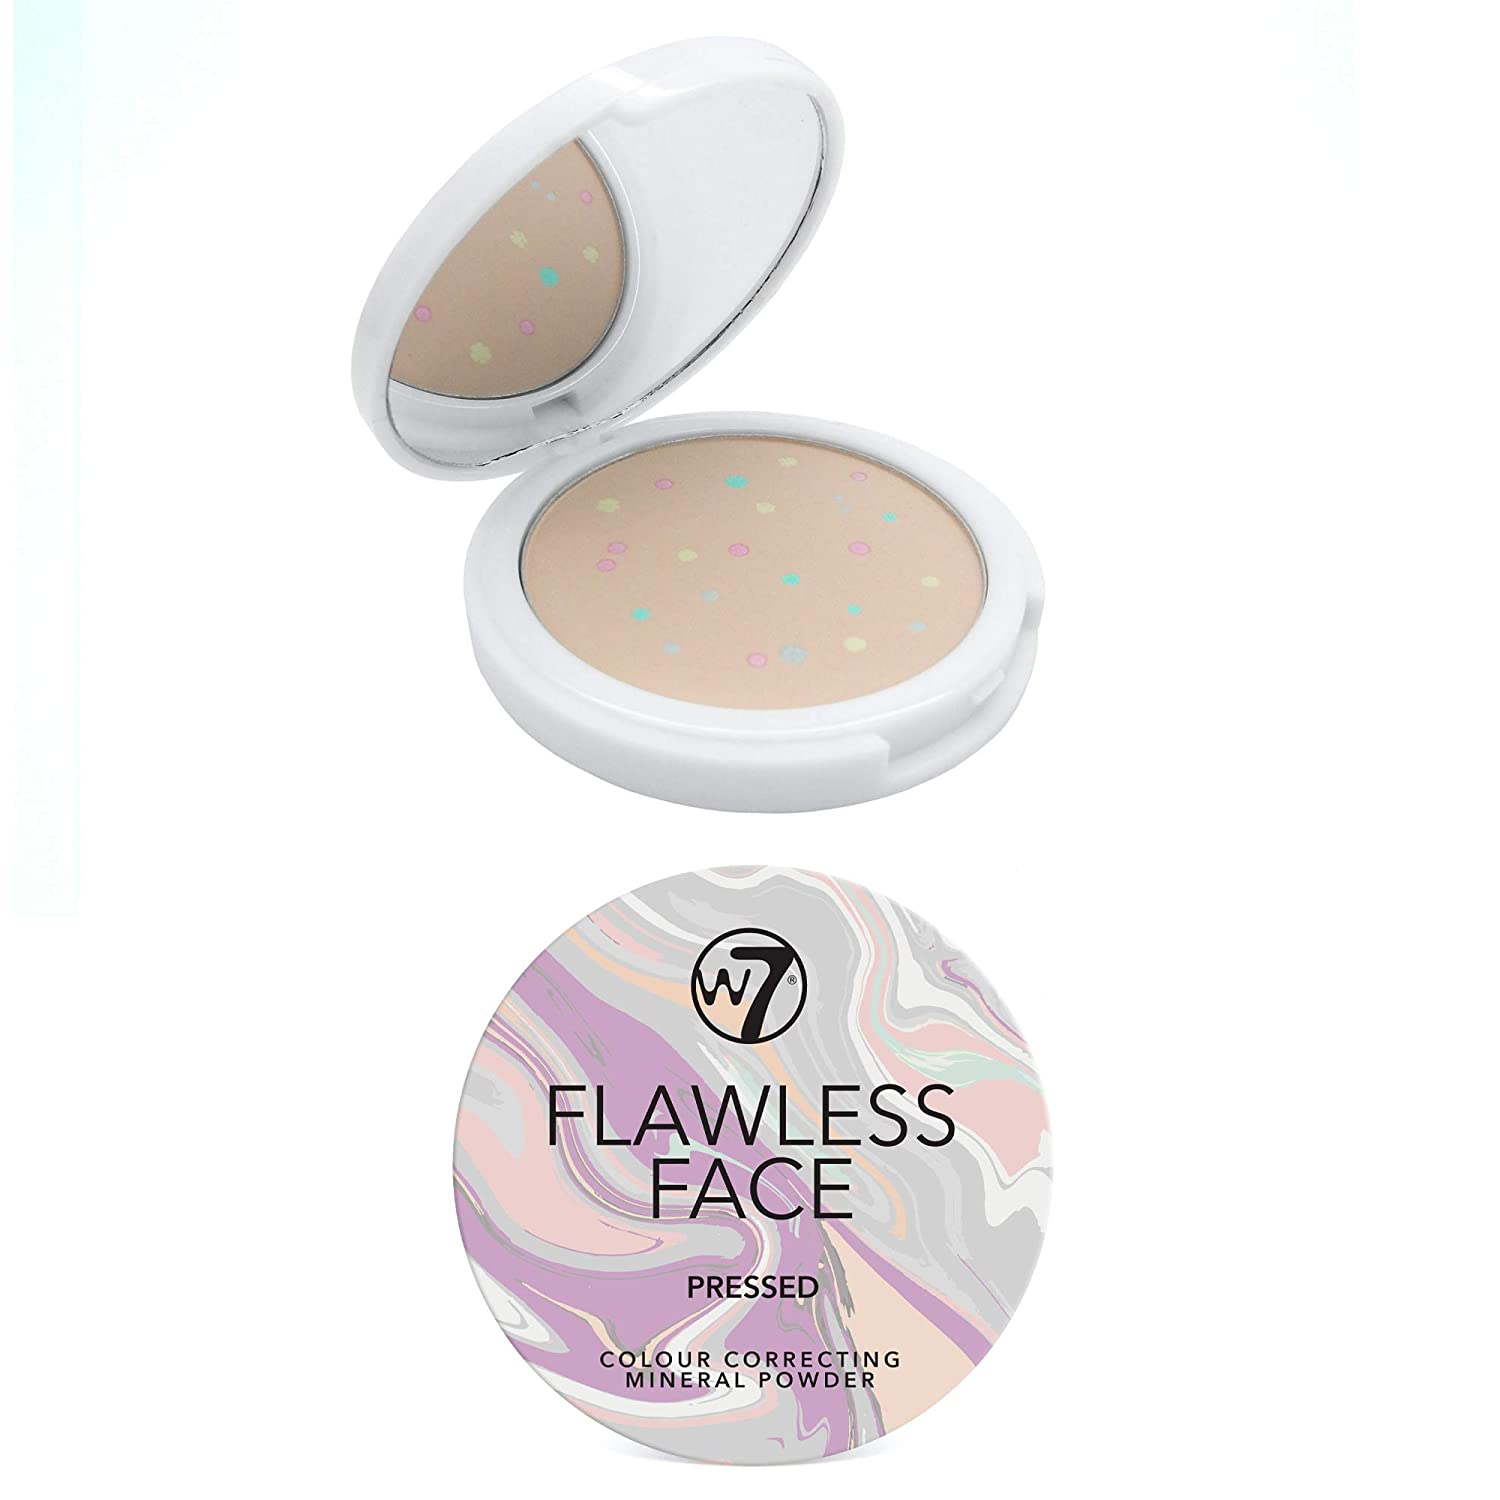 Popular brand in the world W7 Flawless Face Color Correcting Pressed Mineral Ranking TOP12 Fac Powder